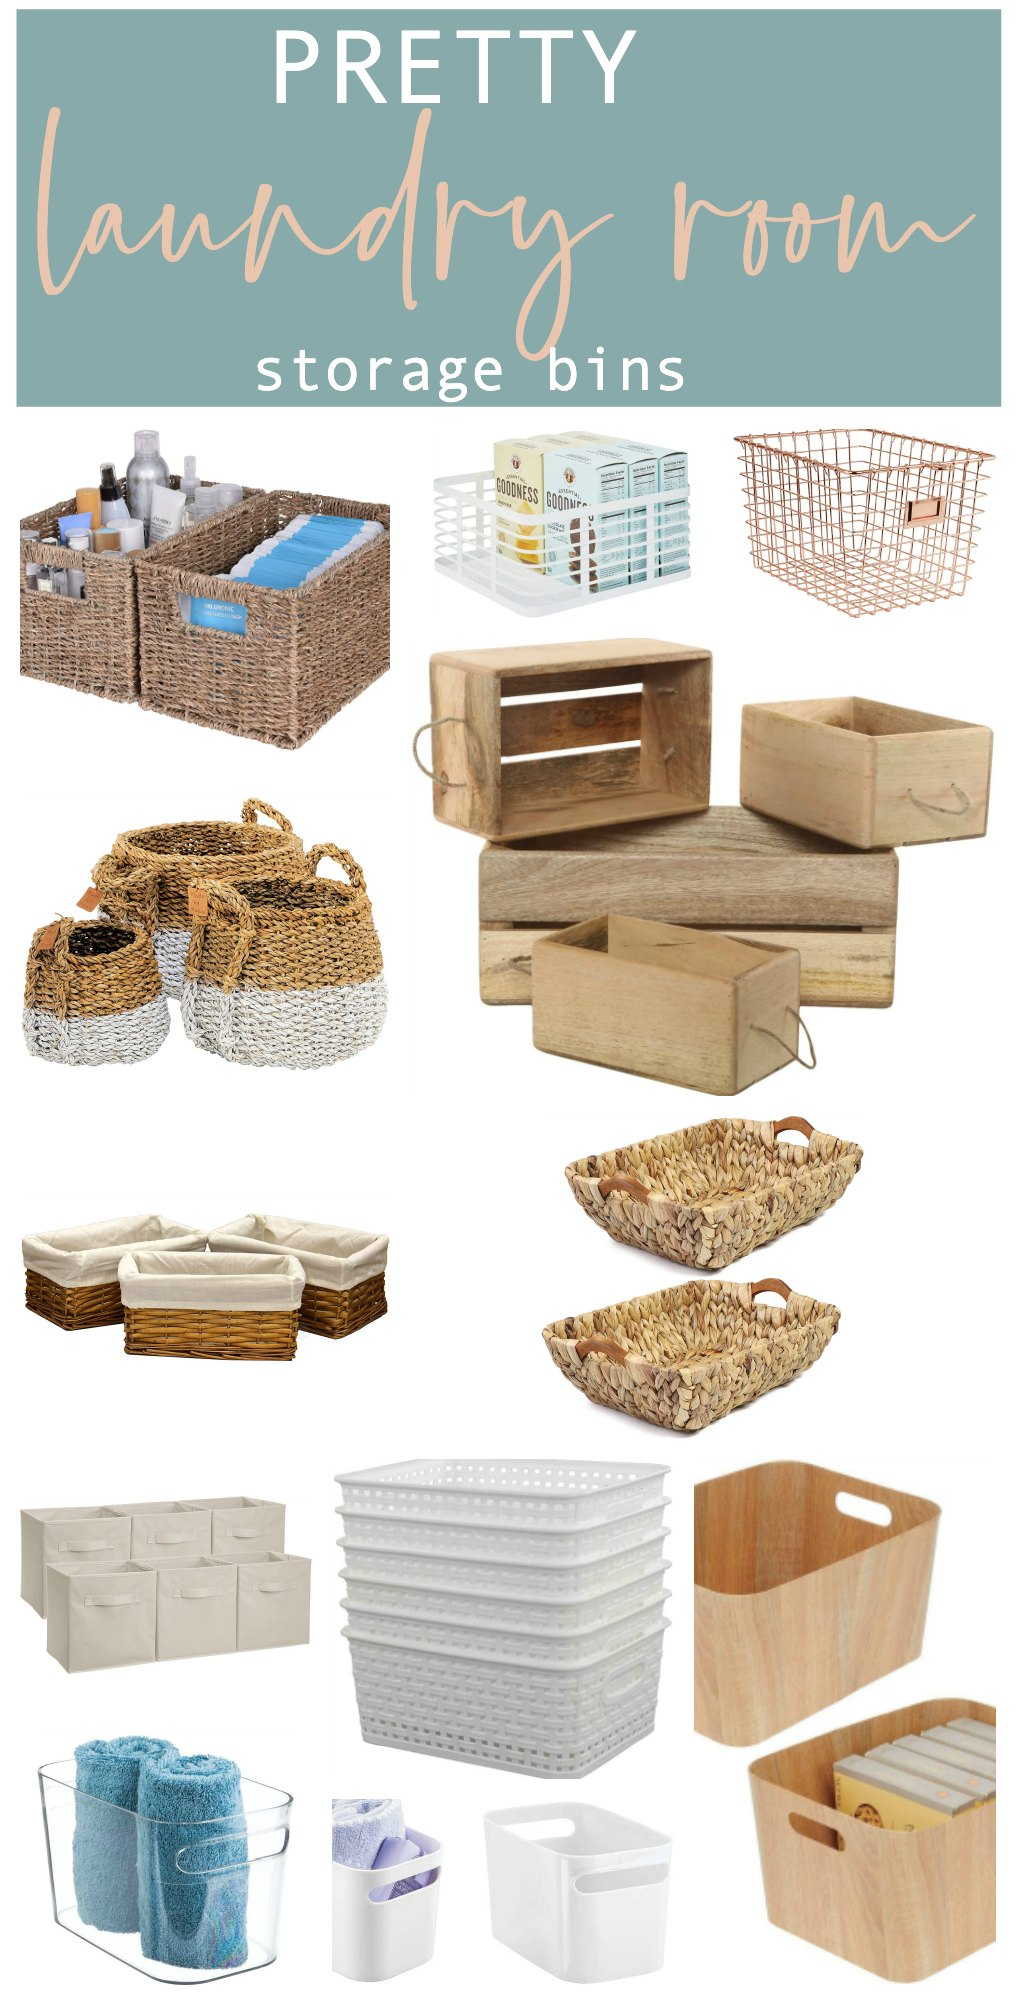 Laundry room baskets and bins for beautiful storage.